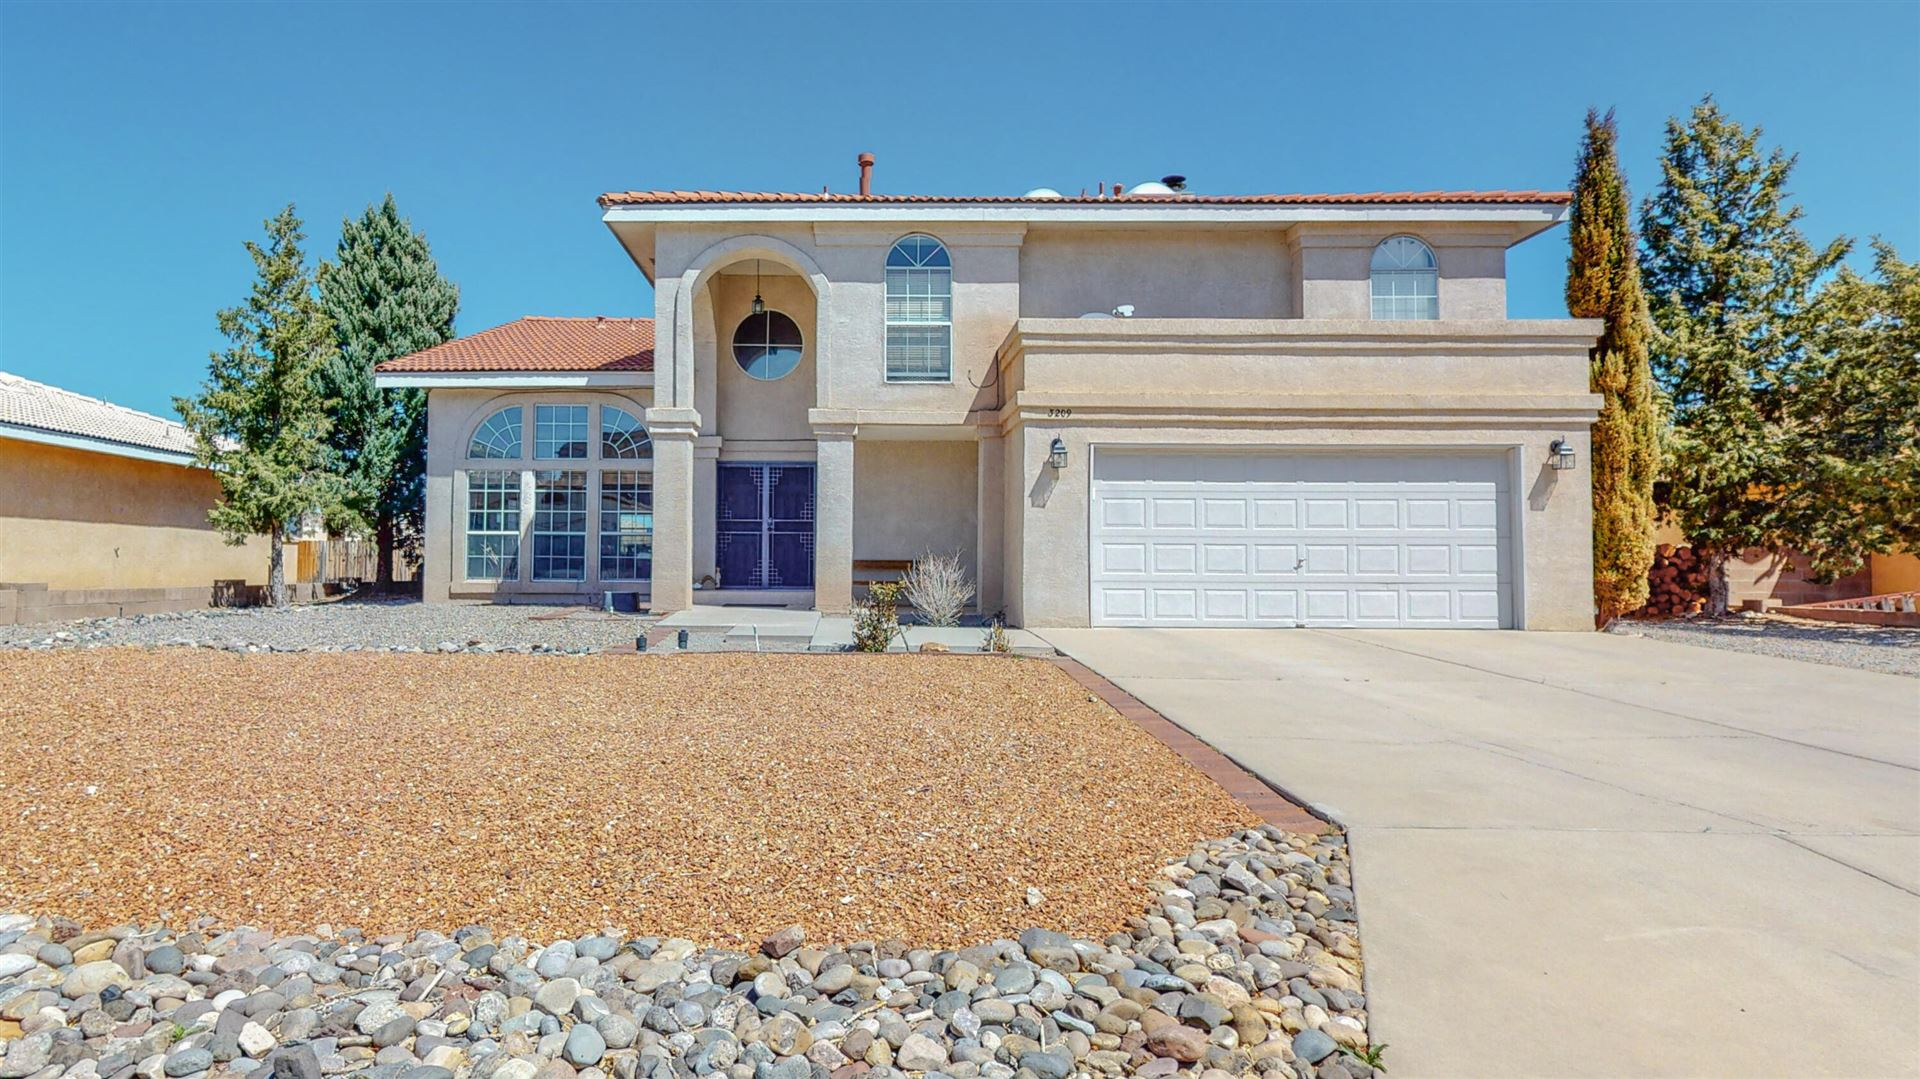 3209 CHANDRA Lane SE, Rio Rancho, NM 87124 - MLS#: 989501